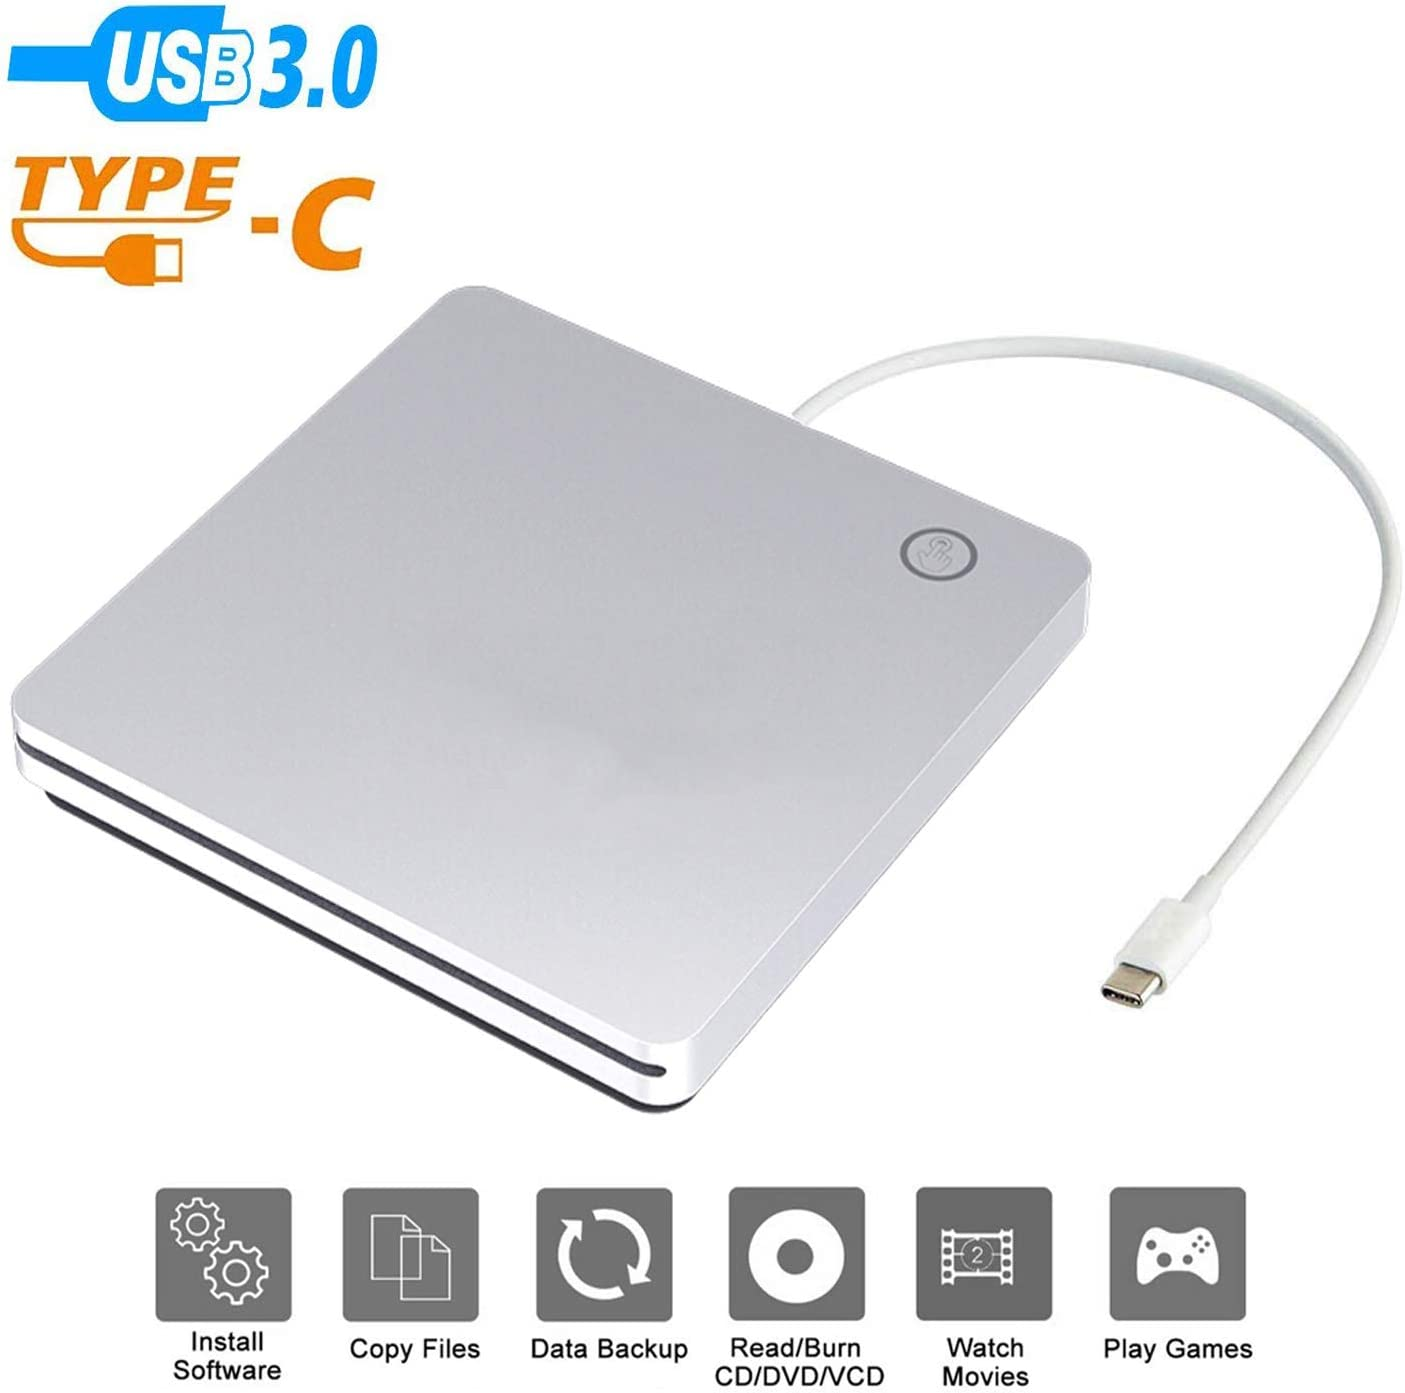 BDYING External USB C CD DVD Drive,Portable USB 3.0 and Type-C Smart Touch Button Slot-in CD DVD Burner Player Writer for Desktop Laptop/Mac/MacBook Pro/Air/Windows XP/7/8/10 Mac OS (Silver)